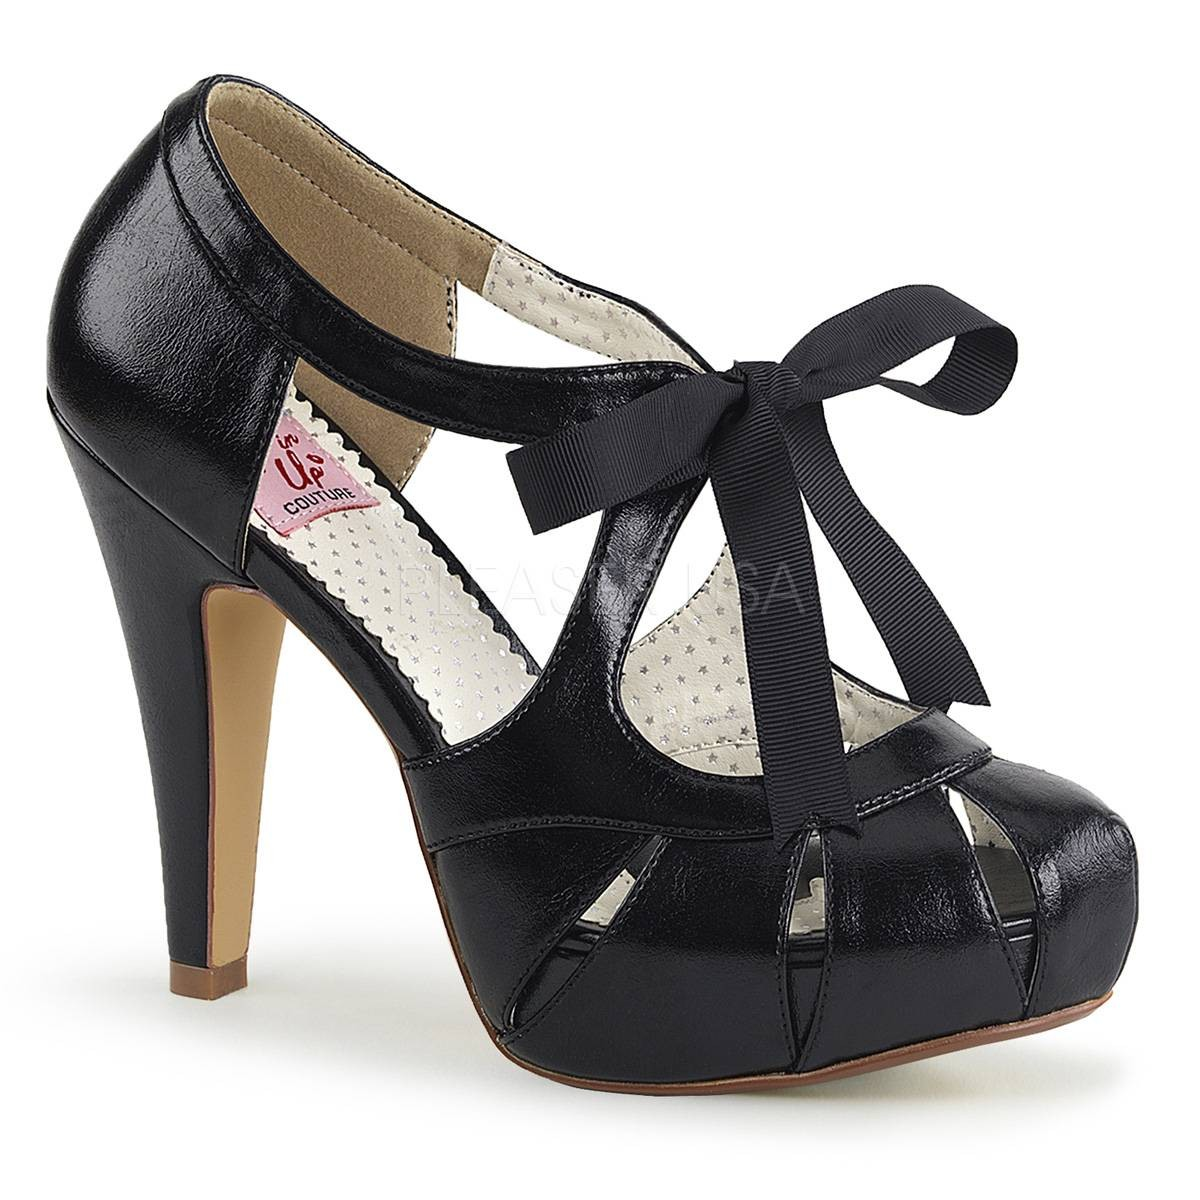 Sandalen - BETTIE 19 ° Damen Sandalette ° SchwarzMatt ° Pin Up Couture  - Onlineshop RedSixty